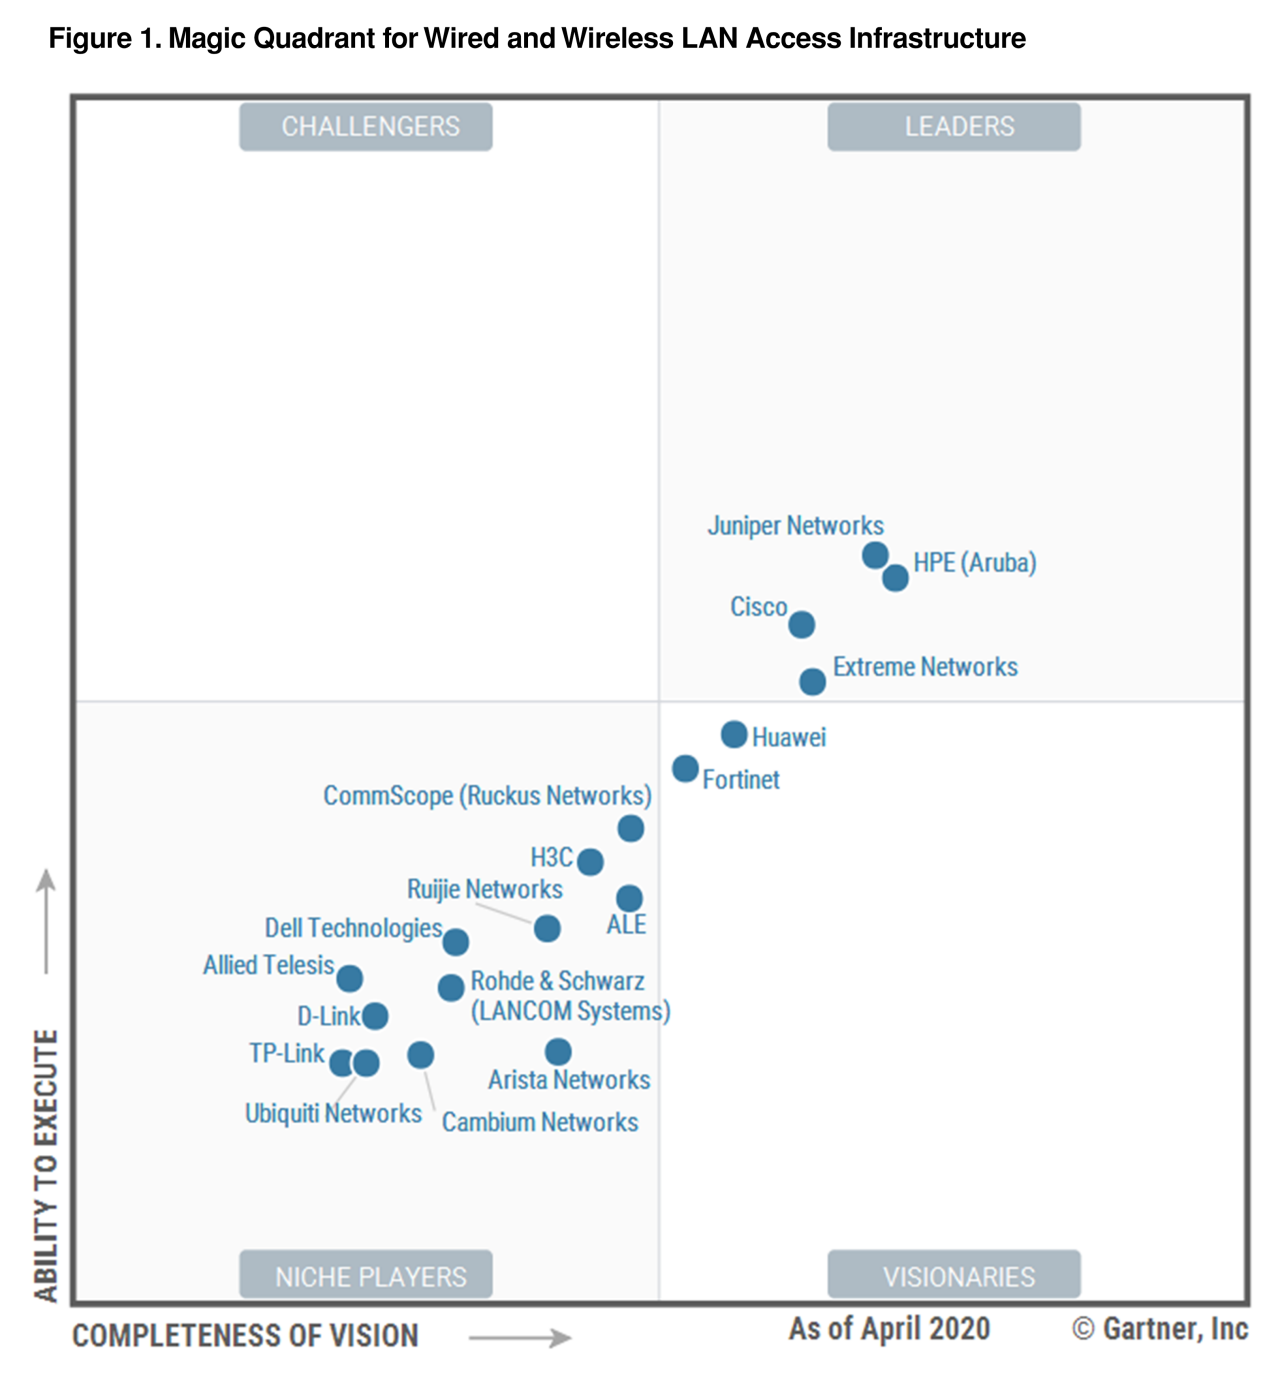 2020 Gartner Magic Quadrant for Wired/Wirless LAN Access Infrastructure